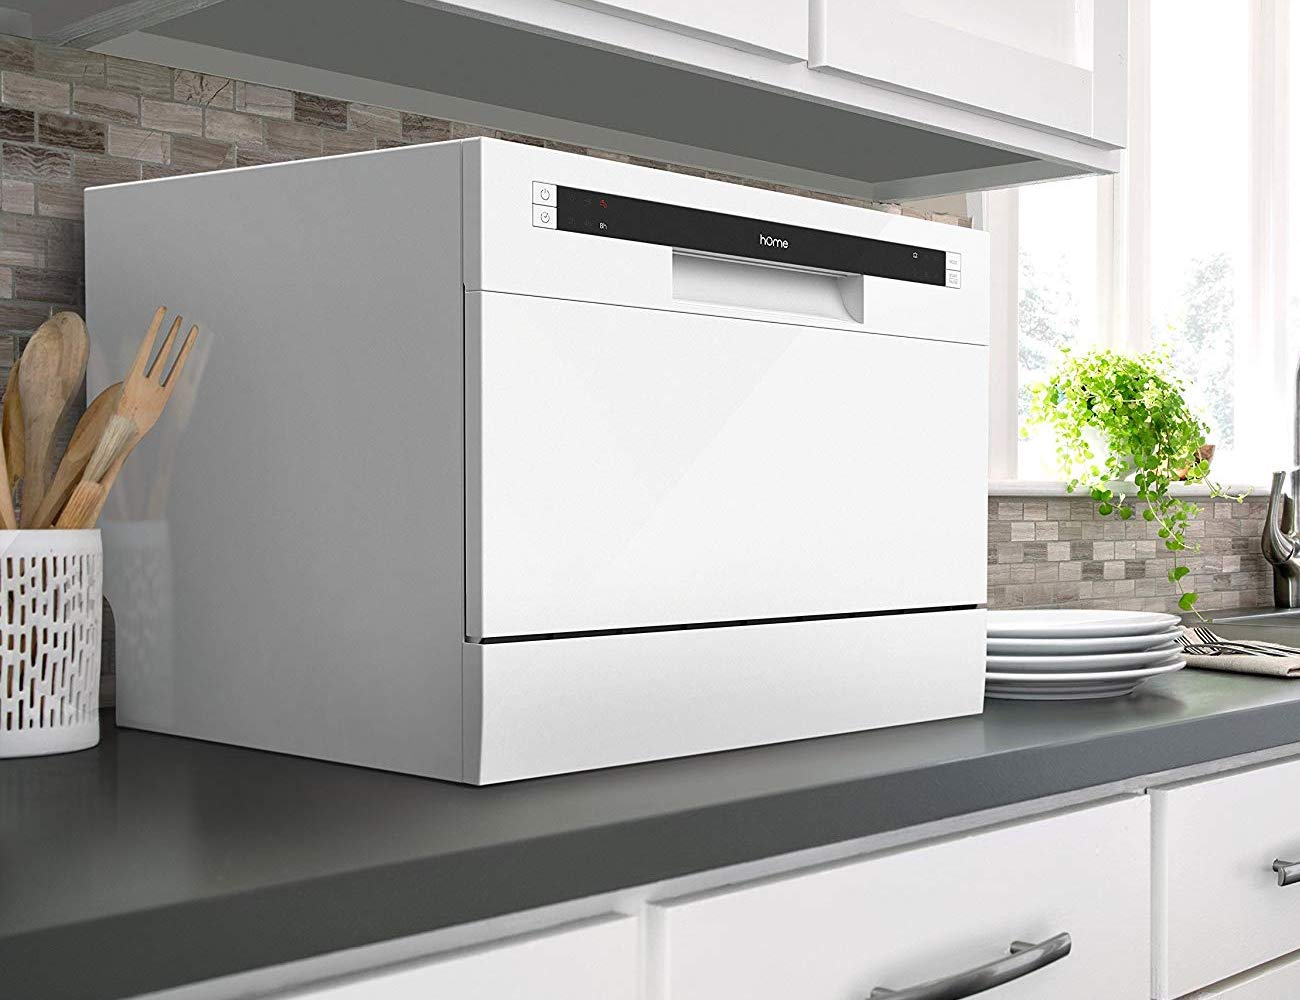 hOmeLabs Compact Countertop Dishwasher is a space saving way to clean up after dinner